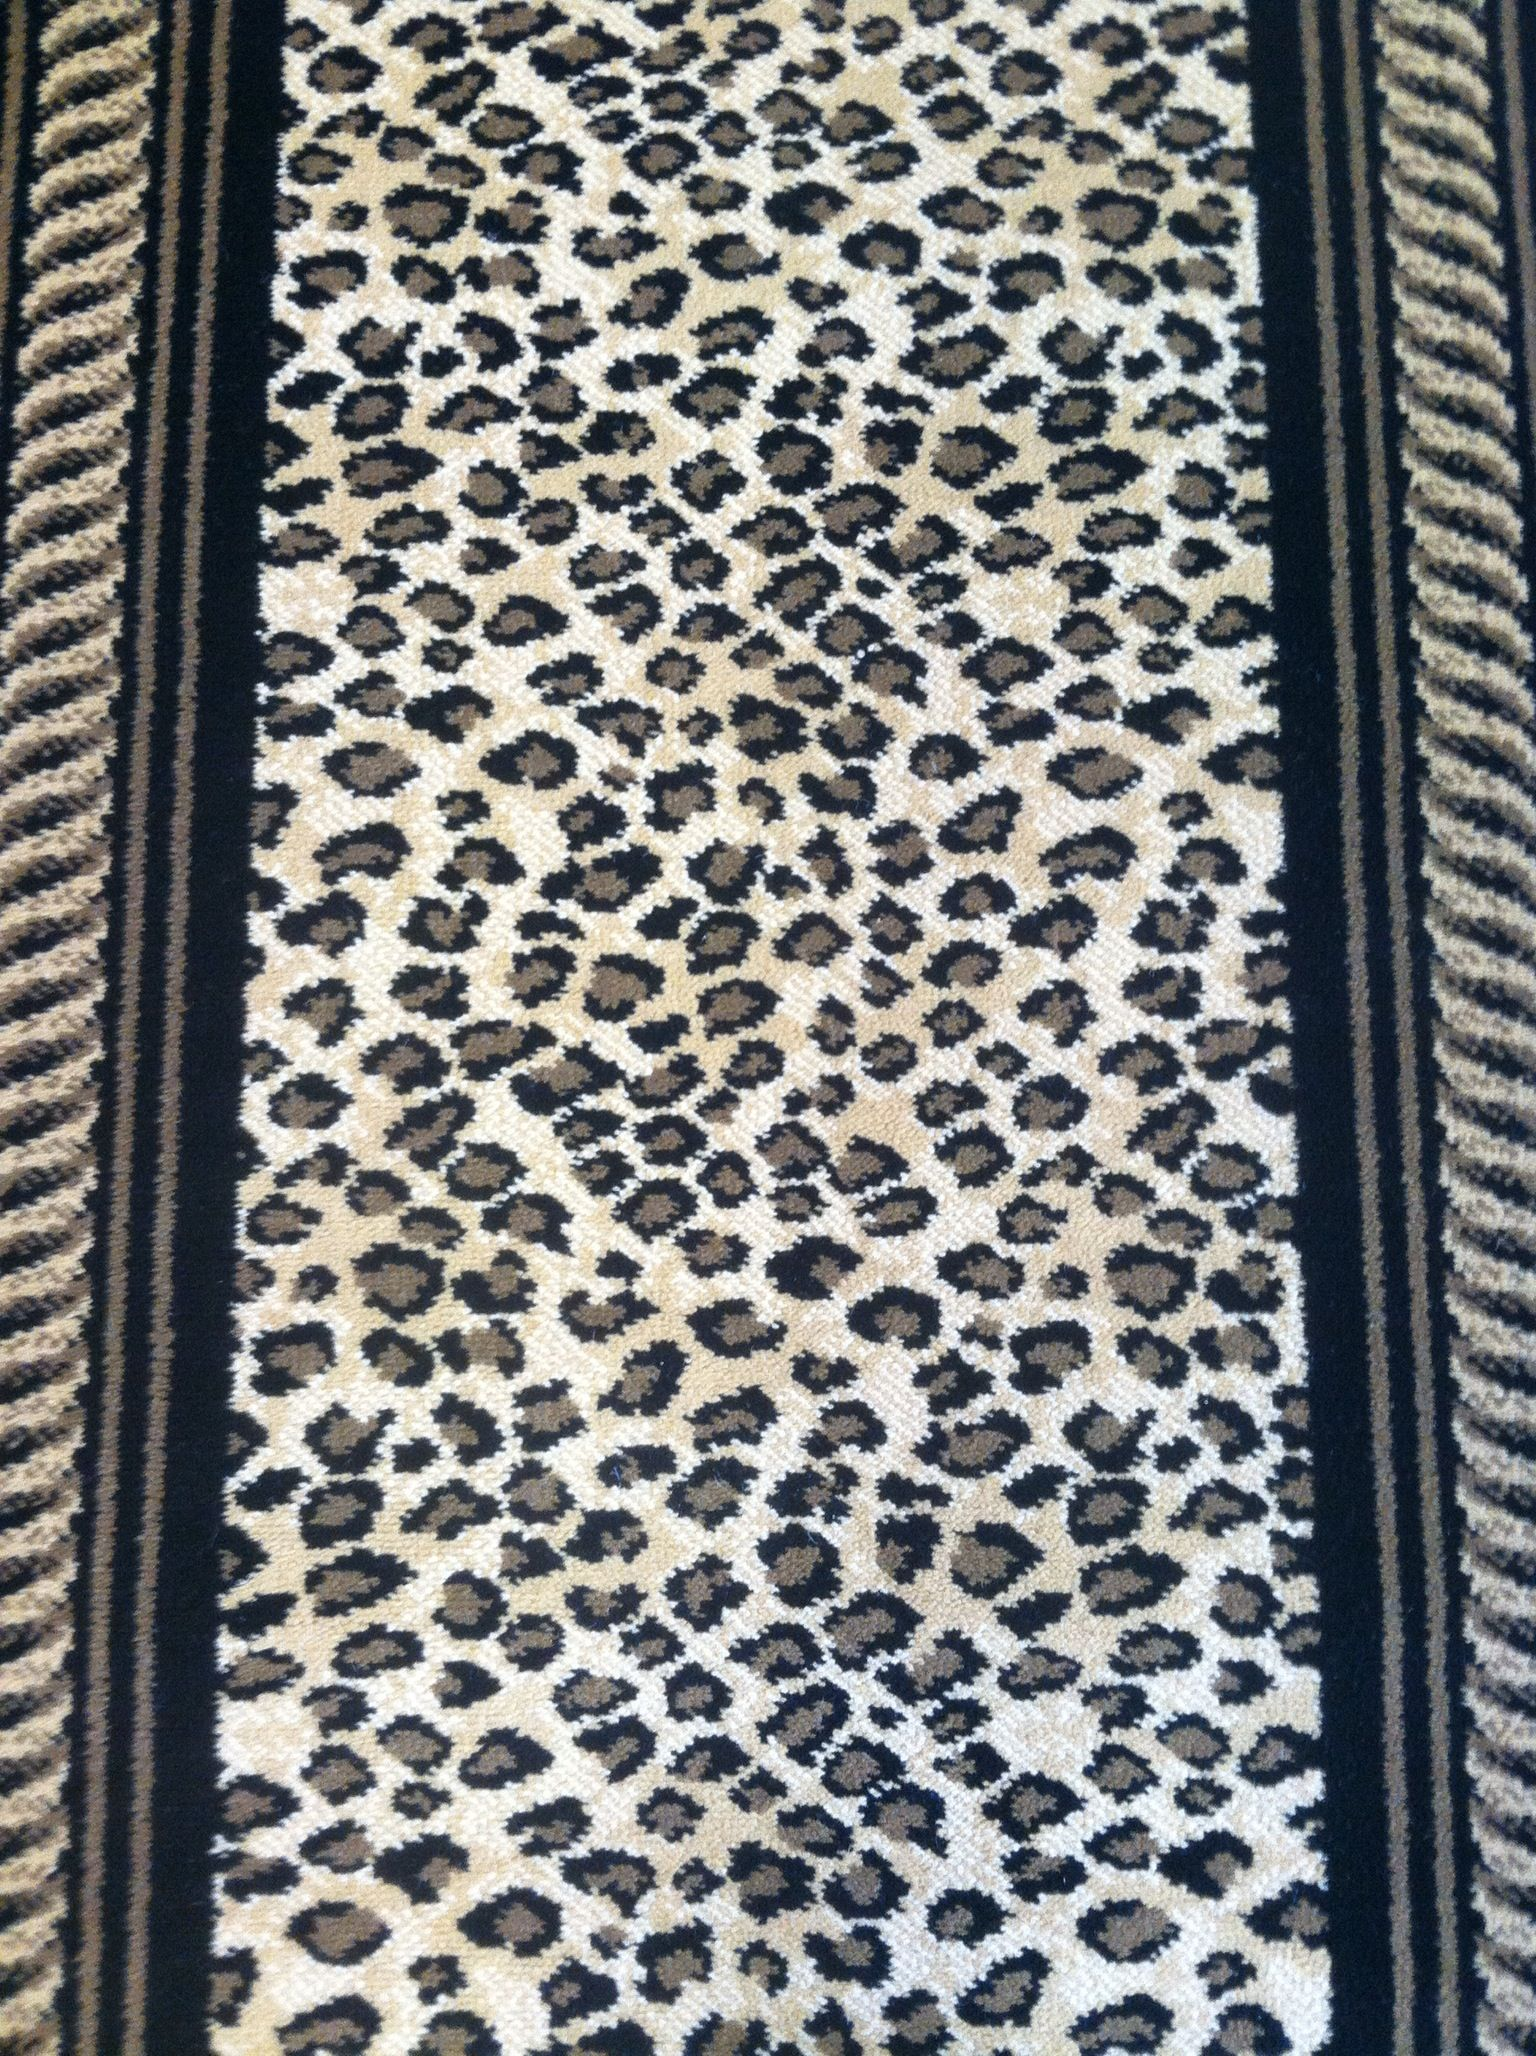 This Is A Wool Animal Print Carpet Remnant That Can Be Installed As A Stair  Runner. This Is One Of Thirty Six New Remnants That We Have Received In Our  ...